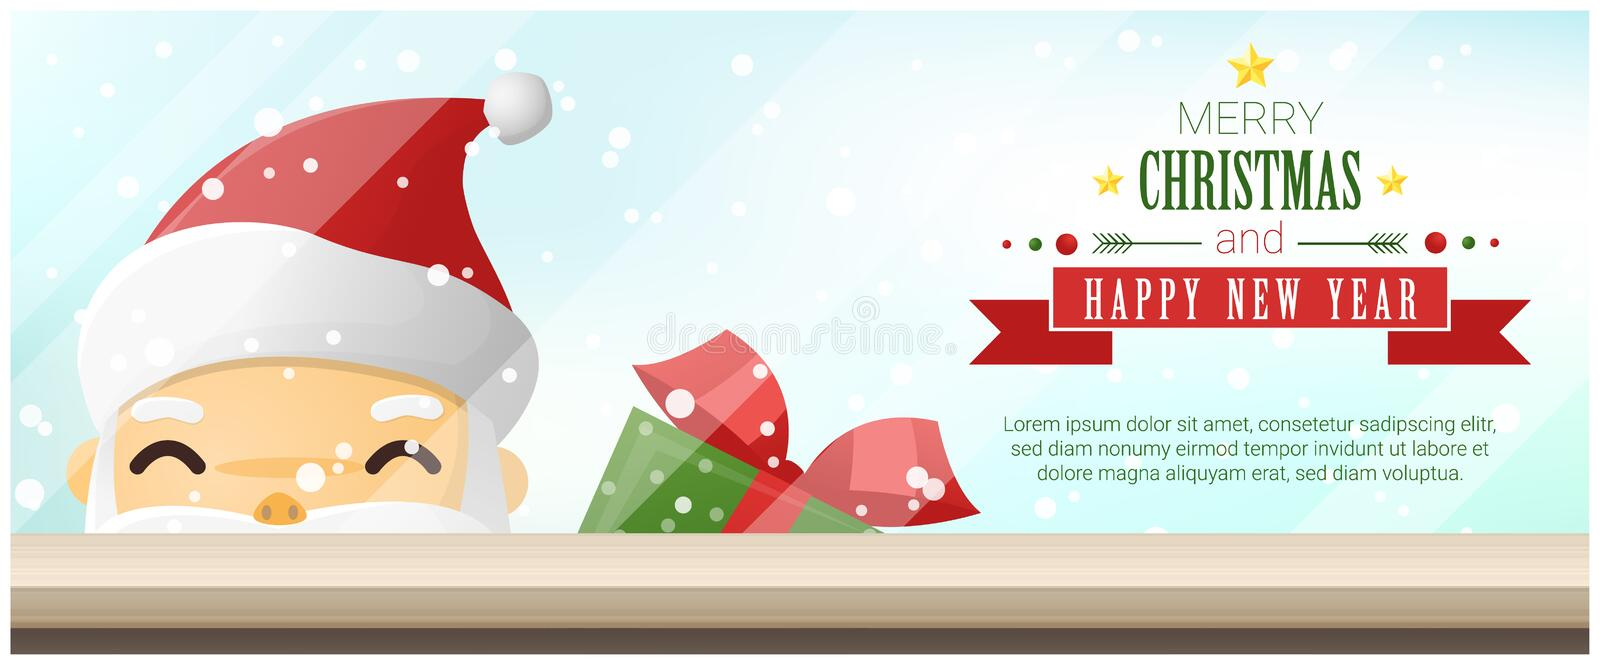 Merry Christmas and Happy New Year background with Santa Claus standing behind window vector illustration